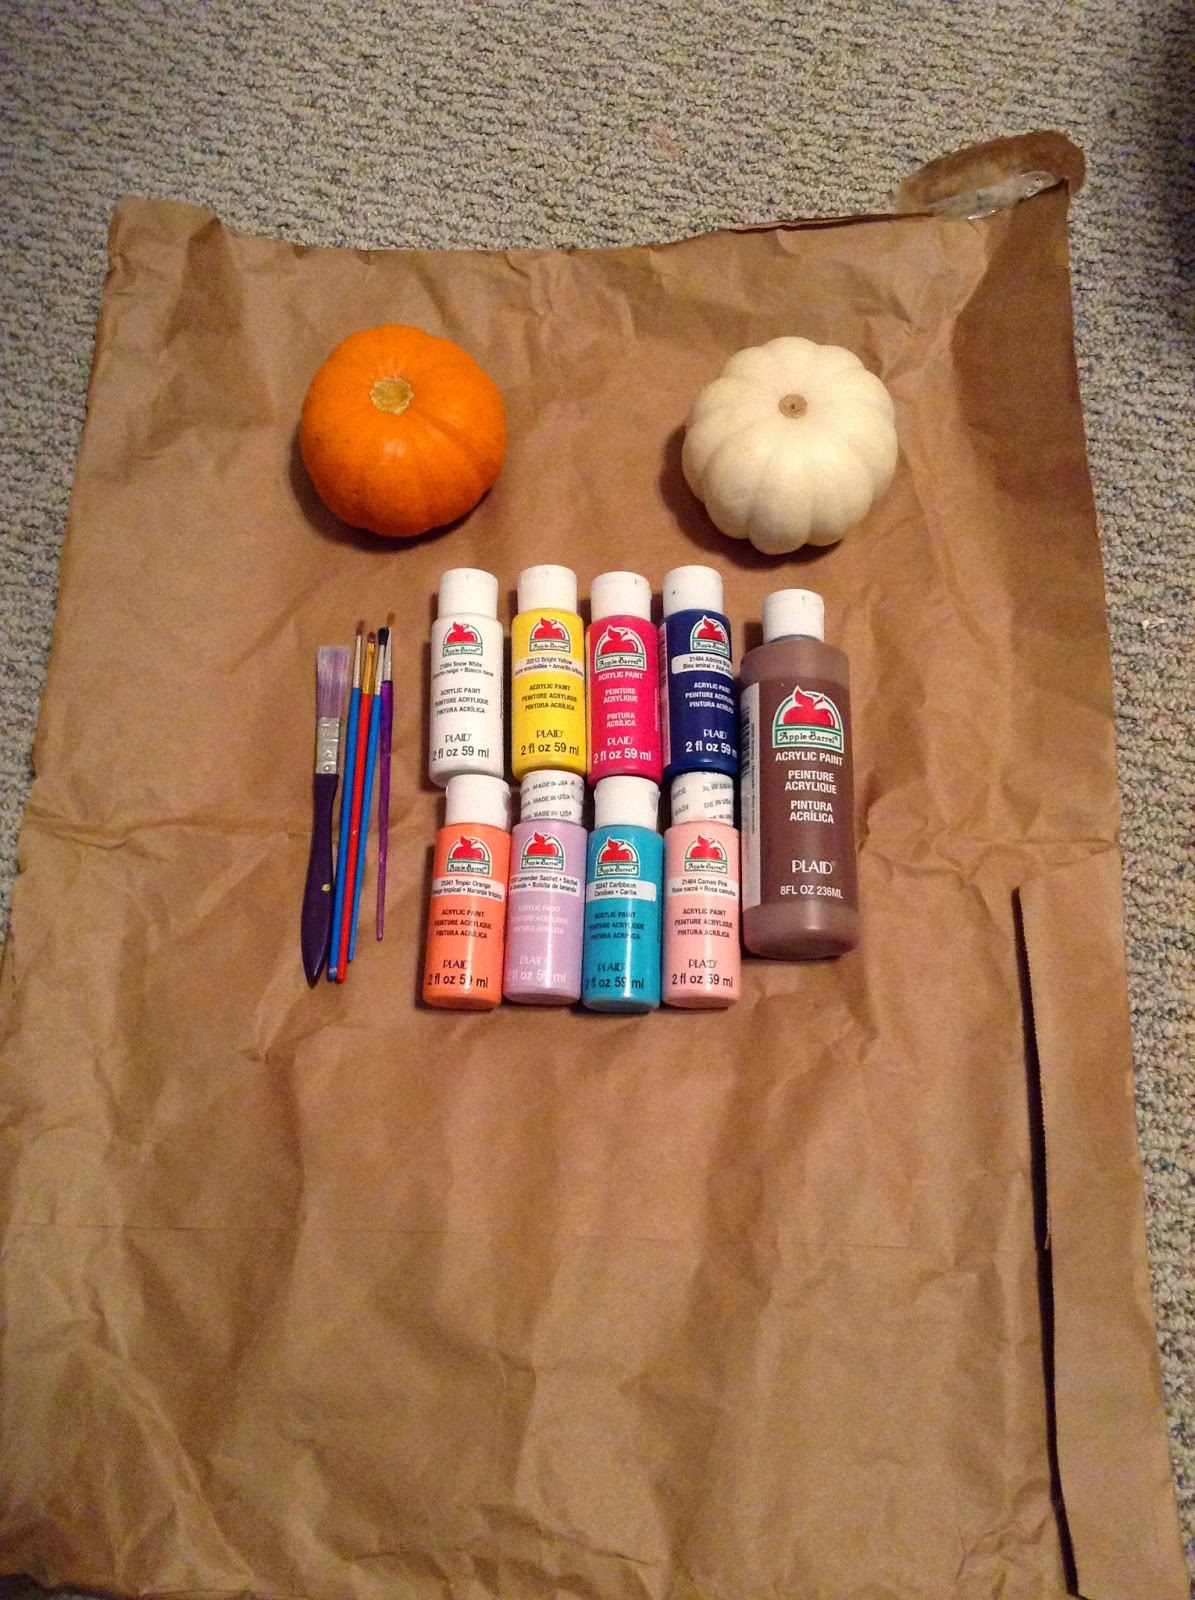 Pumpkins White And Orange You Can Use Any Size But Smallish Ones Work Best Paint Brushes Smaller Tipped